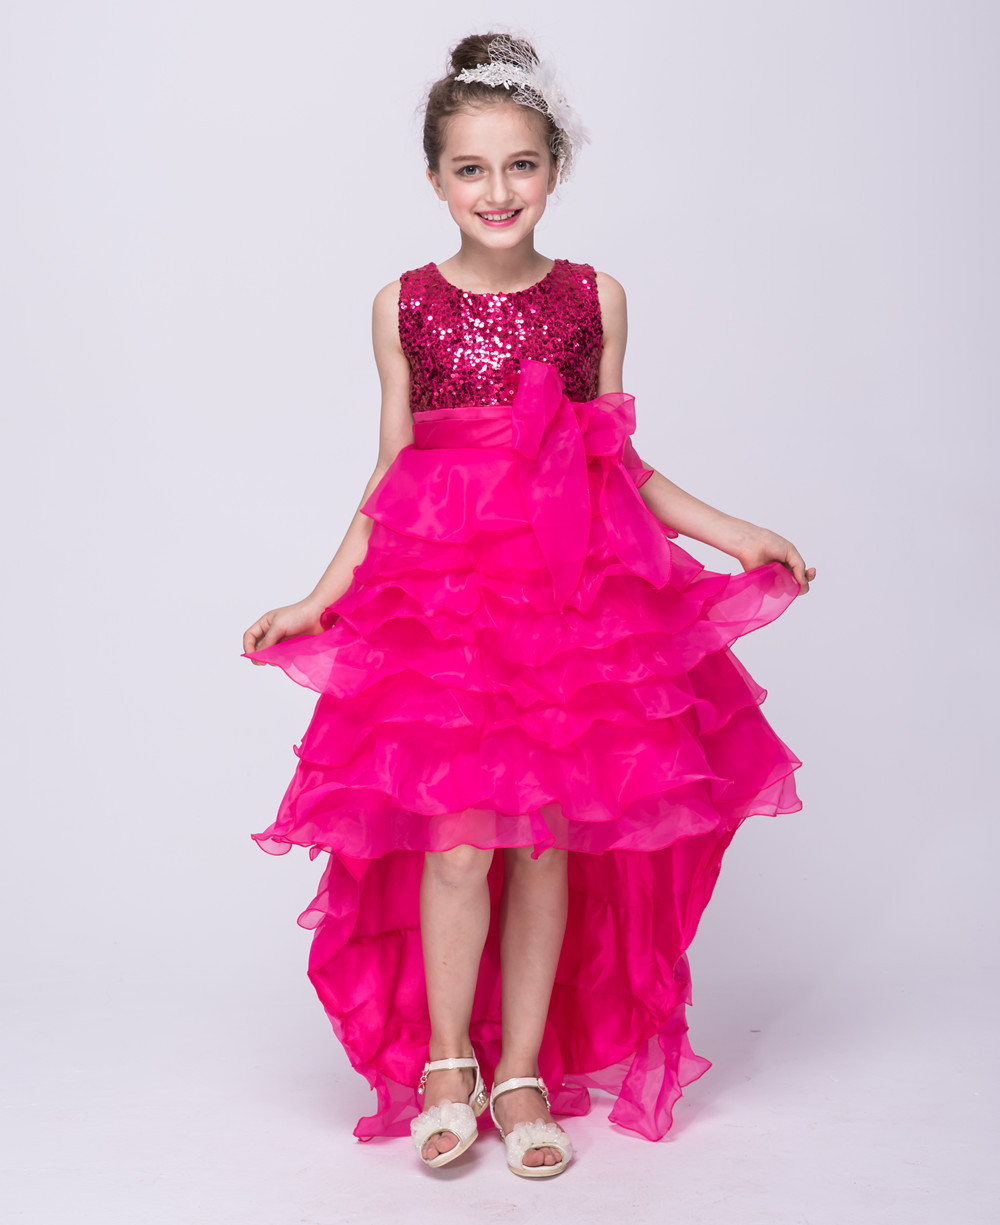 New Arrival Children dress foreign trade girls sequins trailing princess dress school dress Ball Gown Scoop Glitz Pageant HB5213New Arrival Children dress foreign trade girls sequins trailing princess dress school dress Ball Gown Scoop Glitz Pageant HB5213